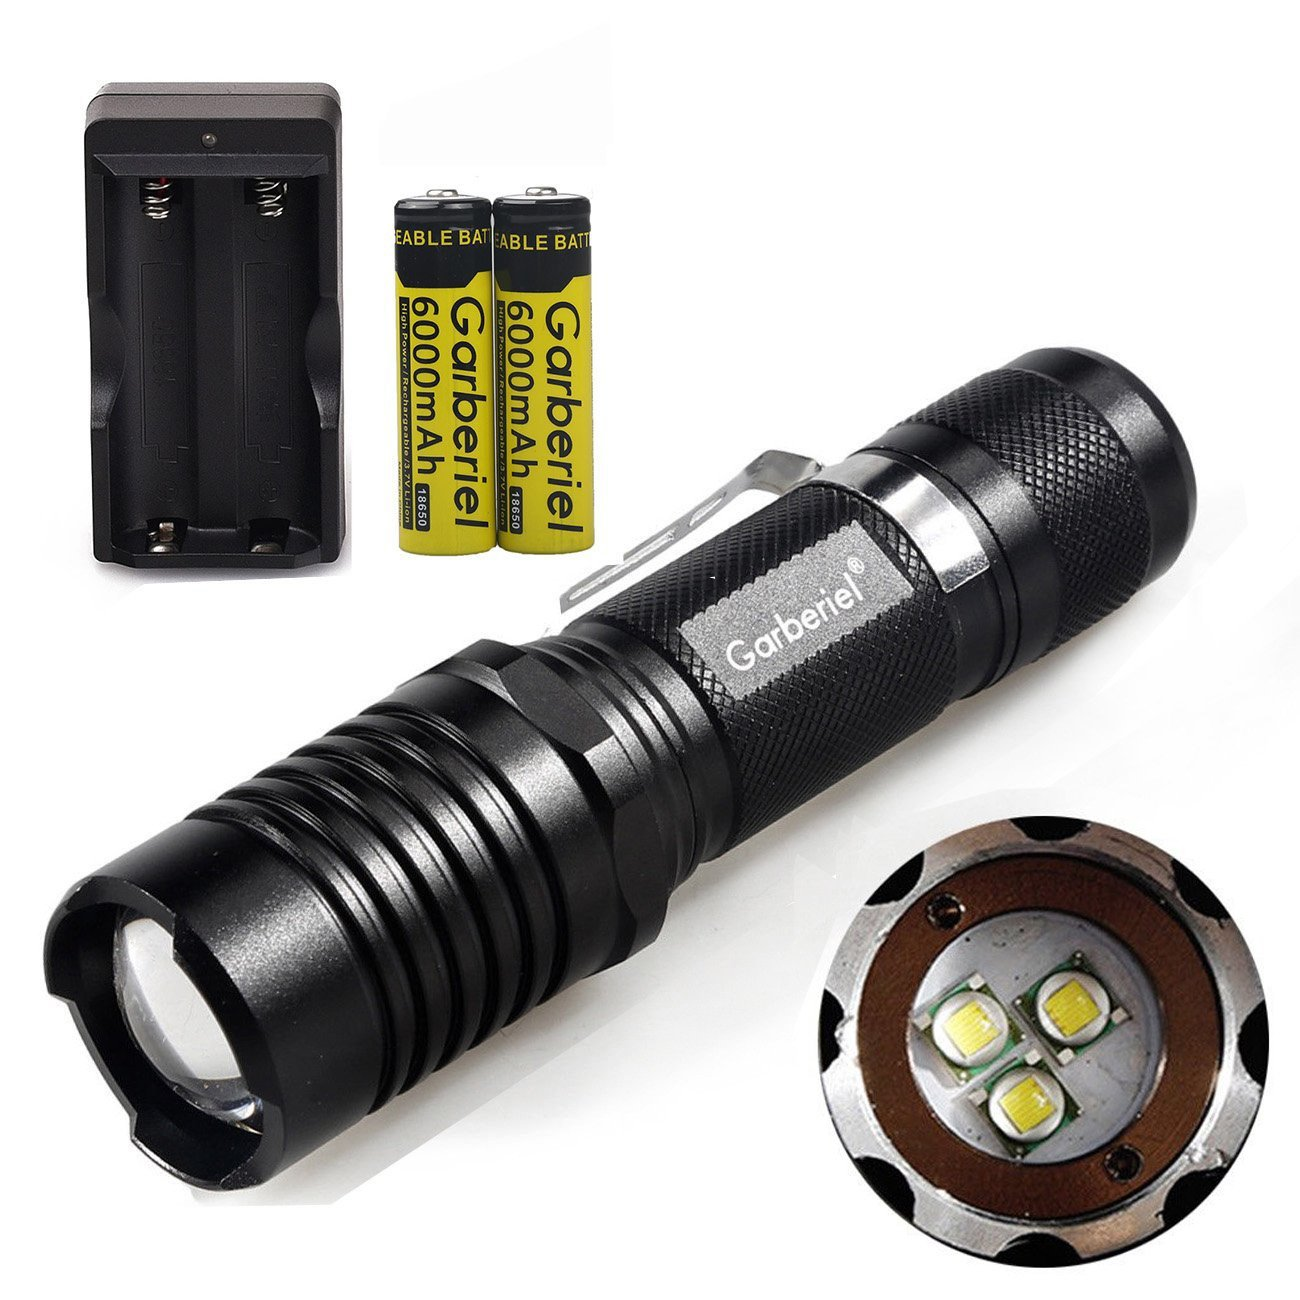 Jisell Super Bright 5000LM LED 3xT6 Tactical LED Flashlight 5 Modes Zoomable Focus Outdoor Torch